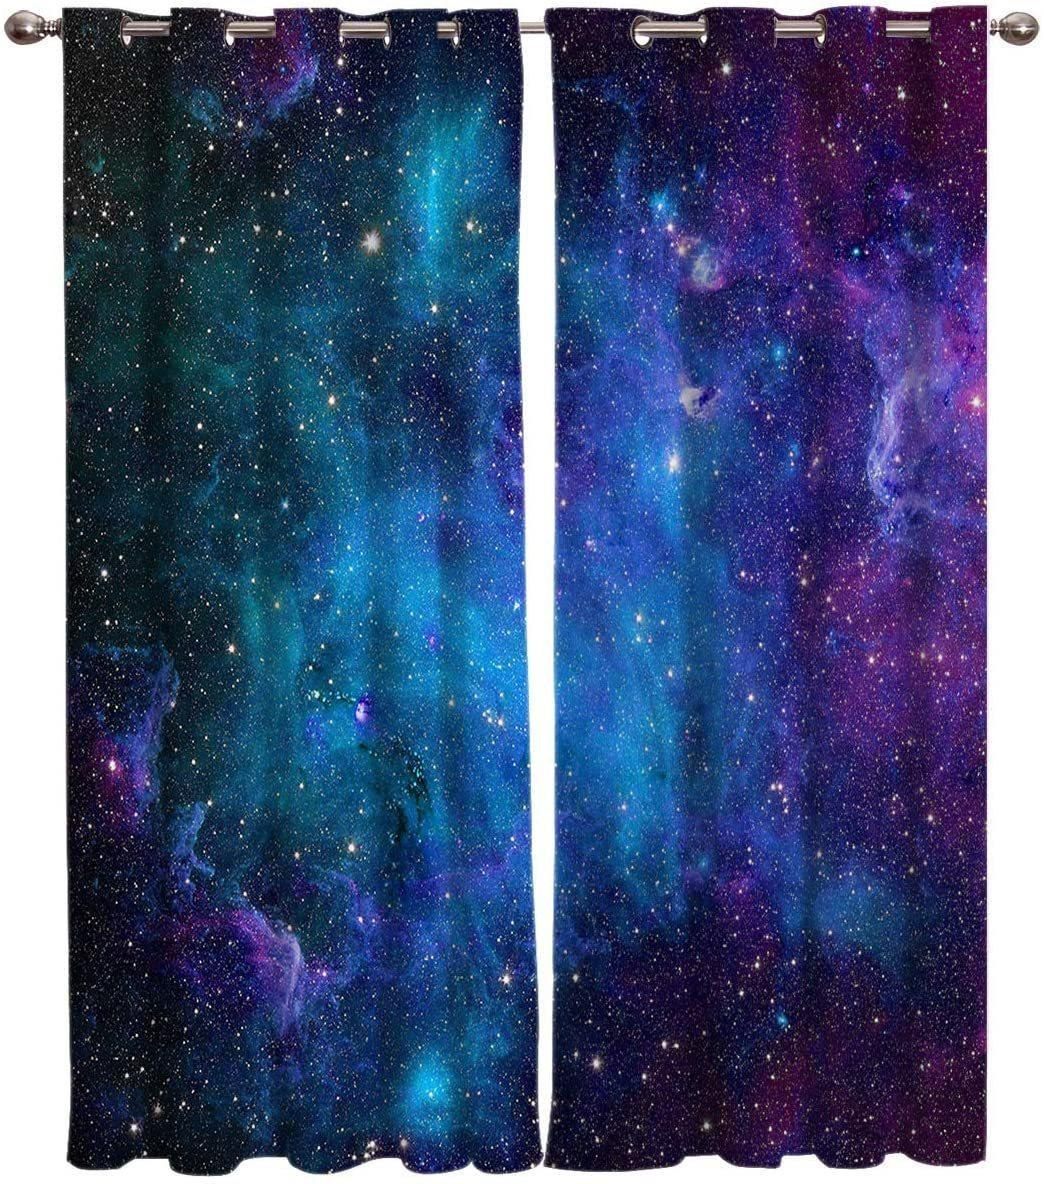 Curtain Galaxy Star Universe Starry Sky Curtain Bedroom Living Room Kitchen Decoration Curtain LJ201224